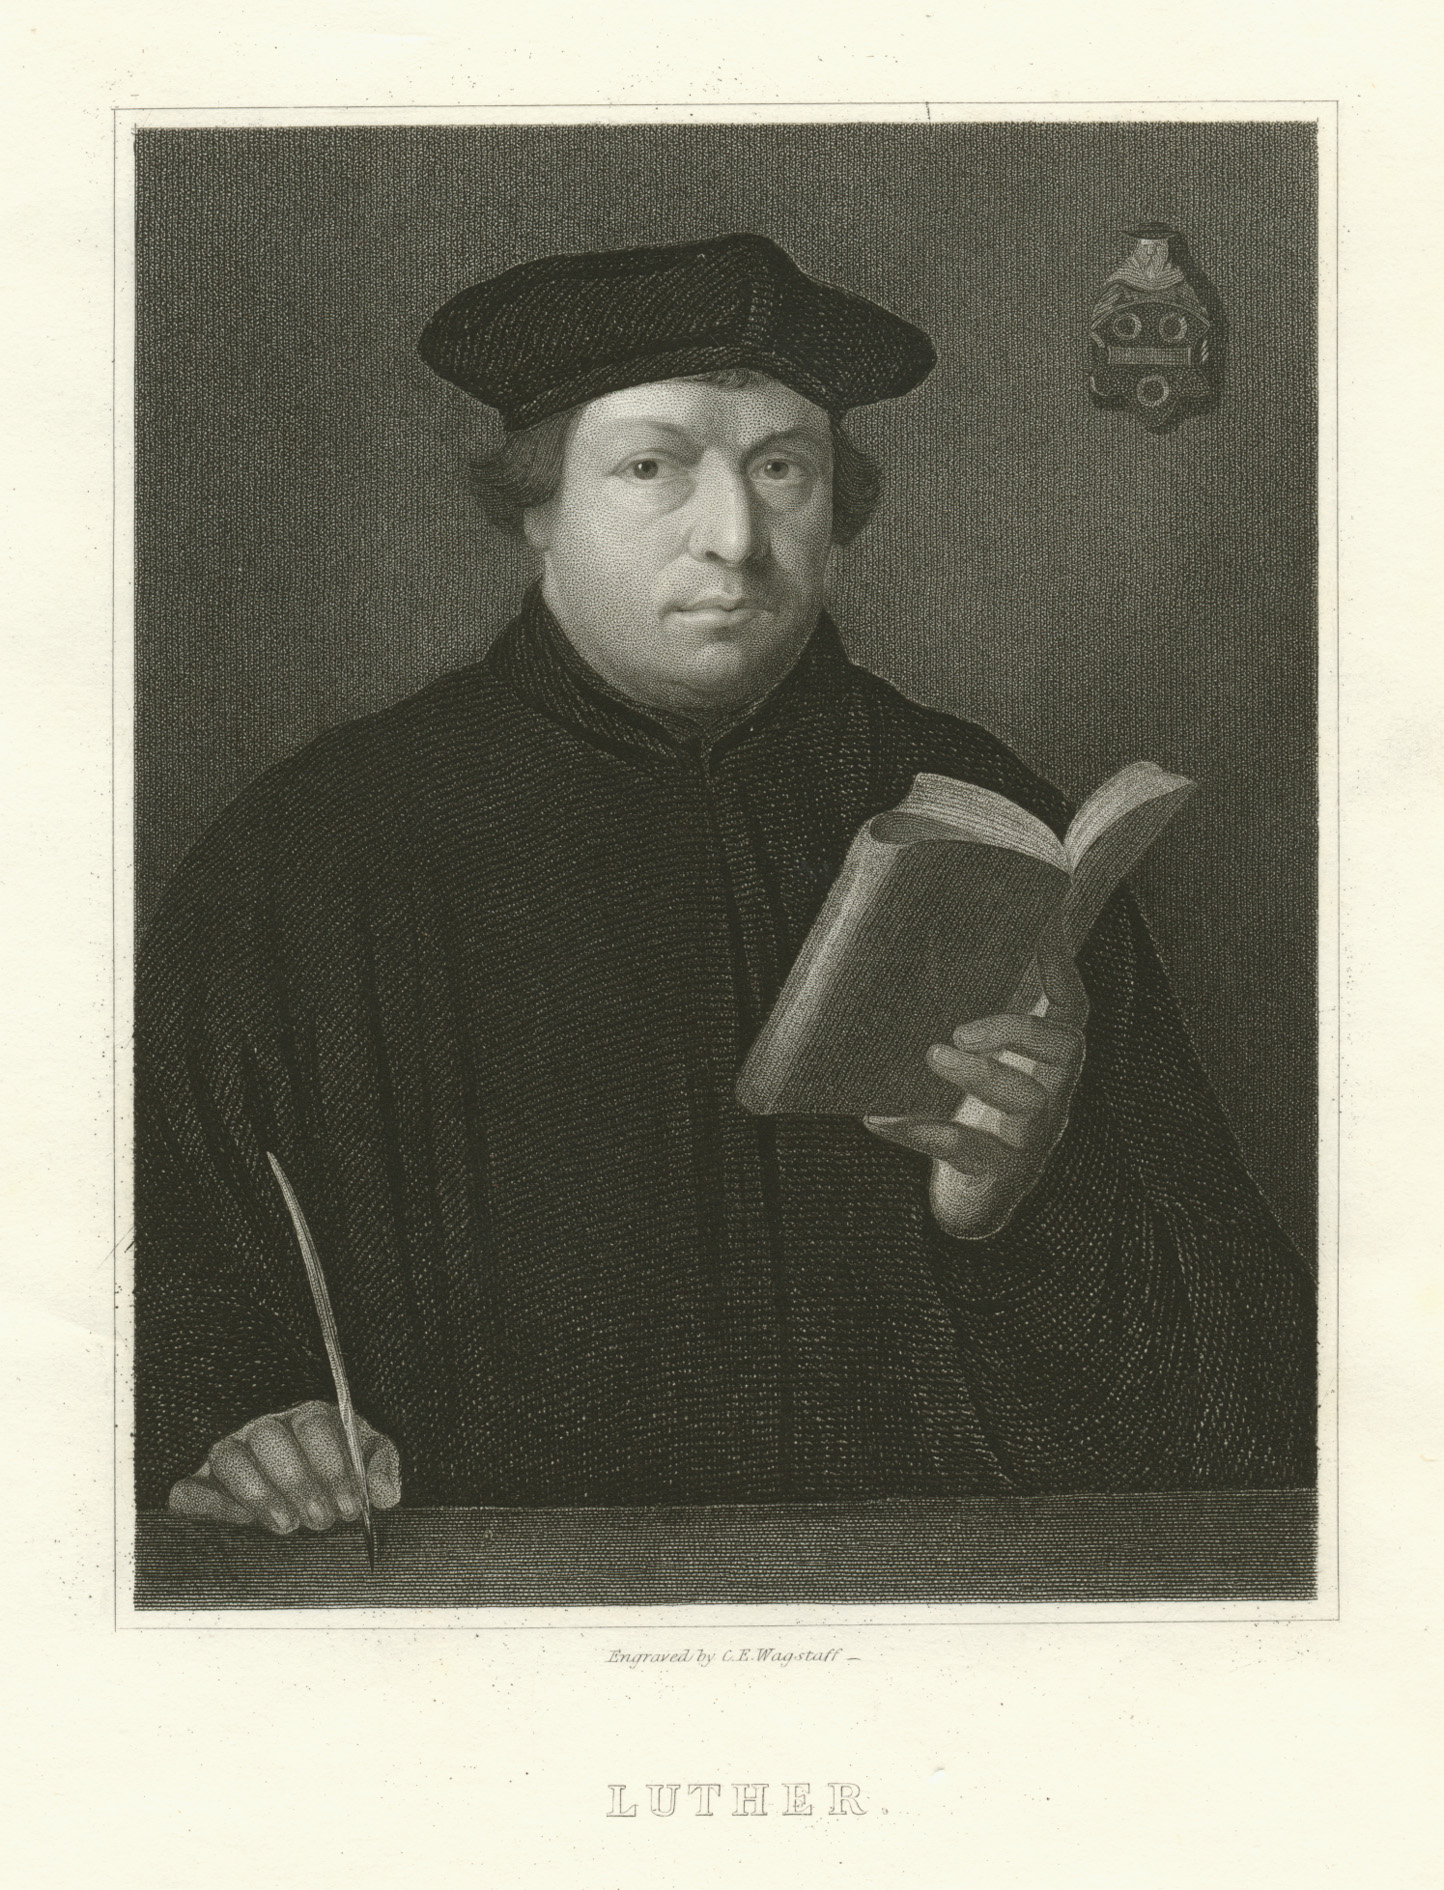 Luther. Engraved by C.E. Wagstaff after Hans Holbein. c1840.